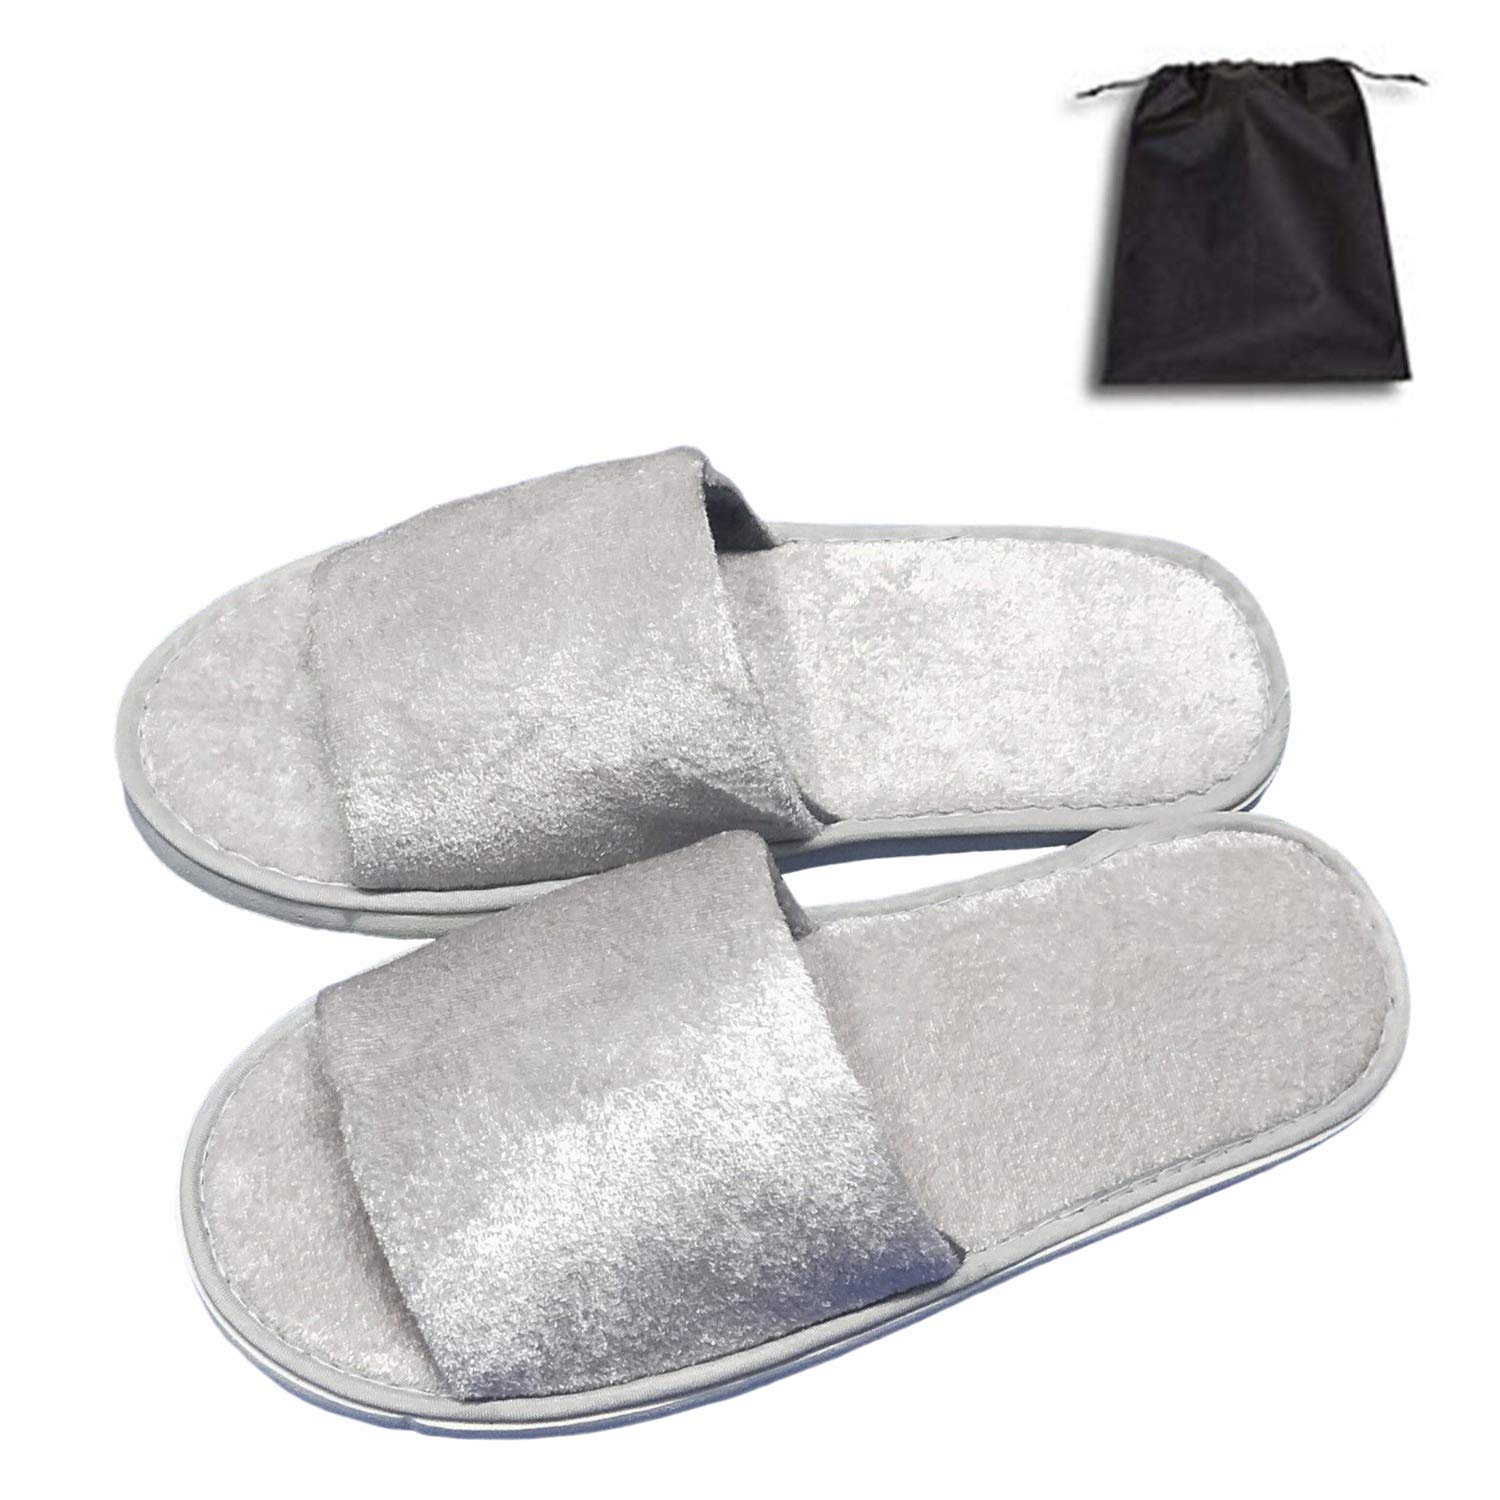 5 Pair of Open Toe Breathable Slippers, Spa Slippers for Guests, Hotel, Travel, Unisex Universal Size Washable and Non-Disposable Gray by Tee-Mo